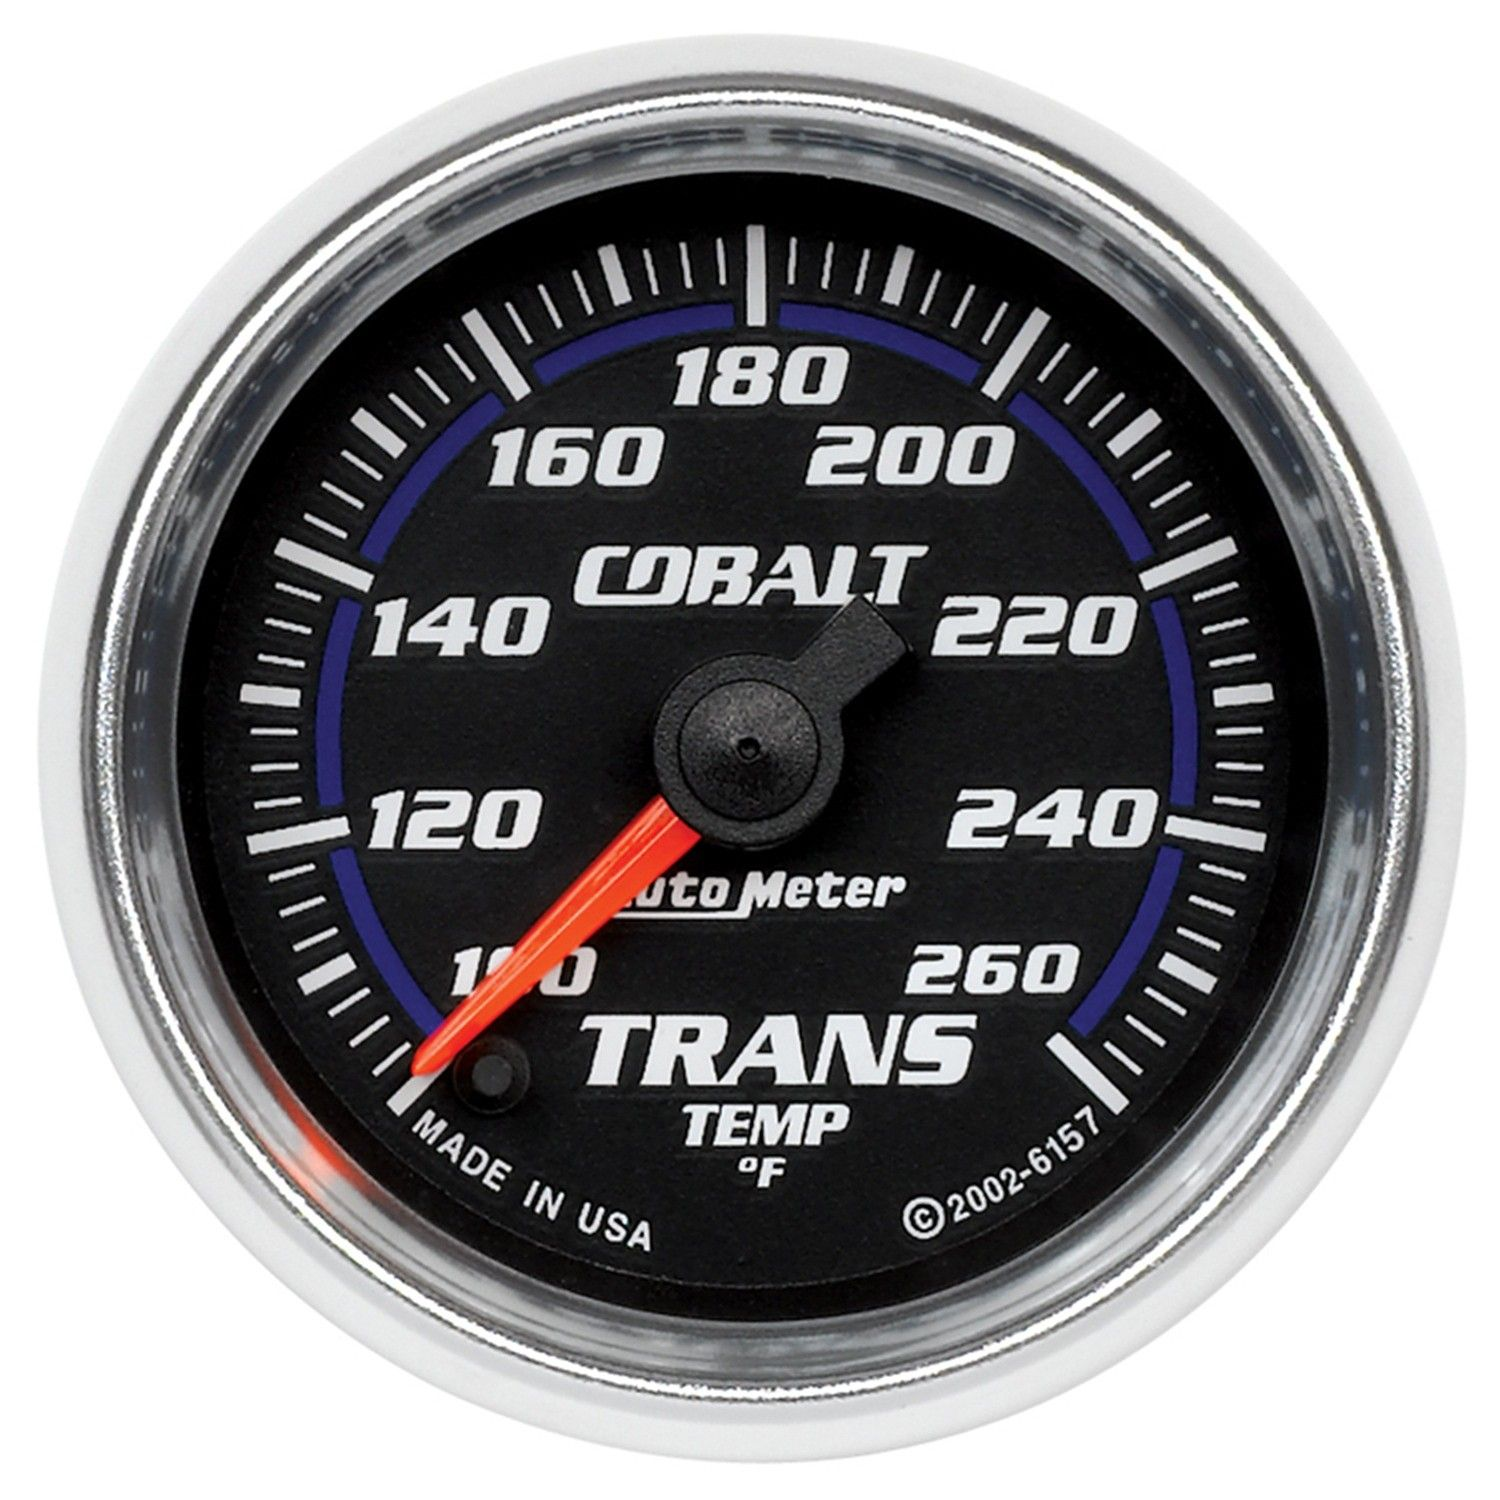 medium resolution of 2 trans temp 100 260 f fse cobalt gauges cobalt